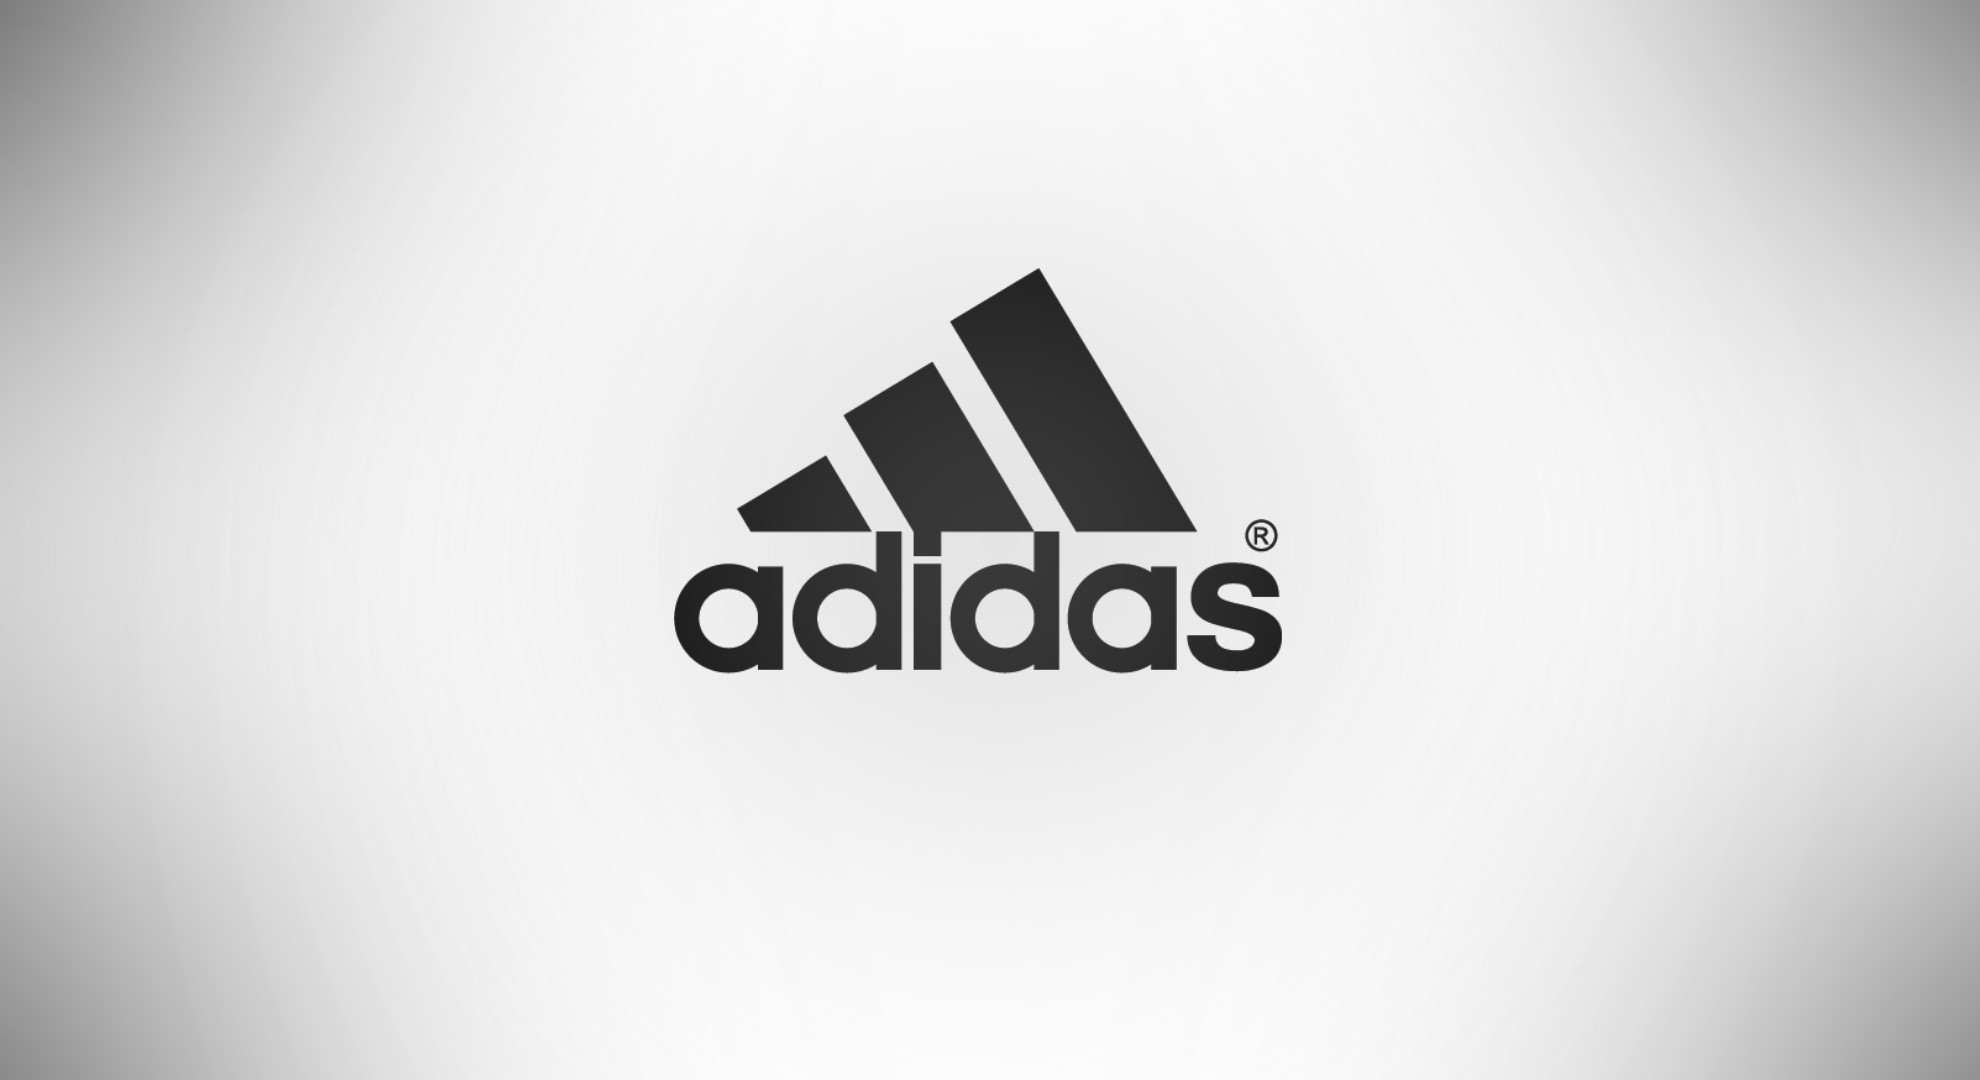 Adidas logos HD Wallpaper